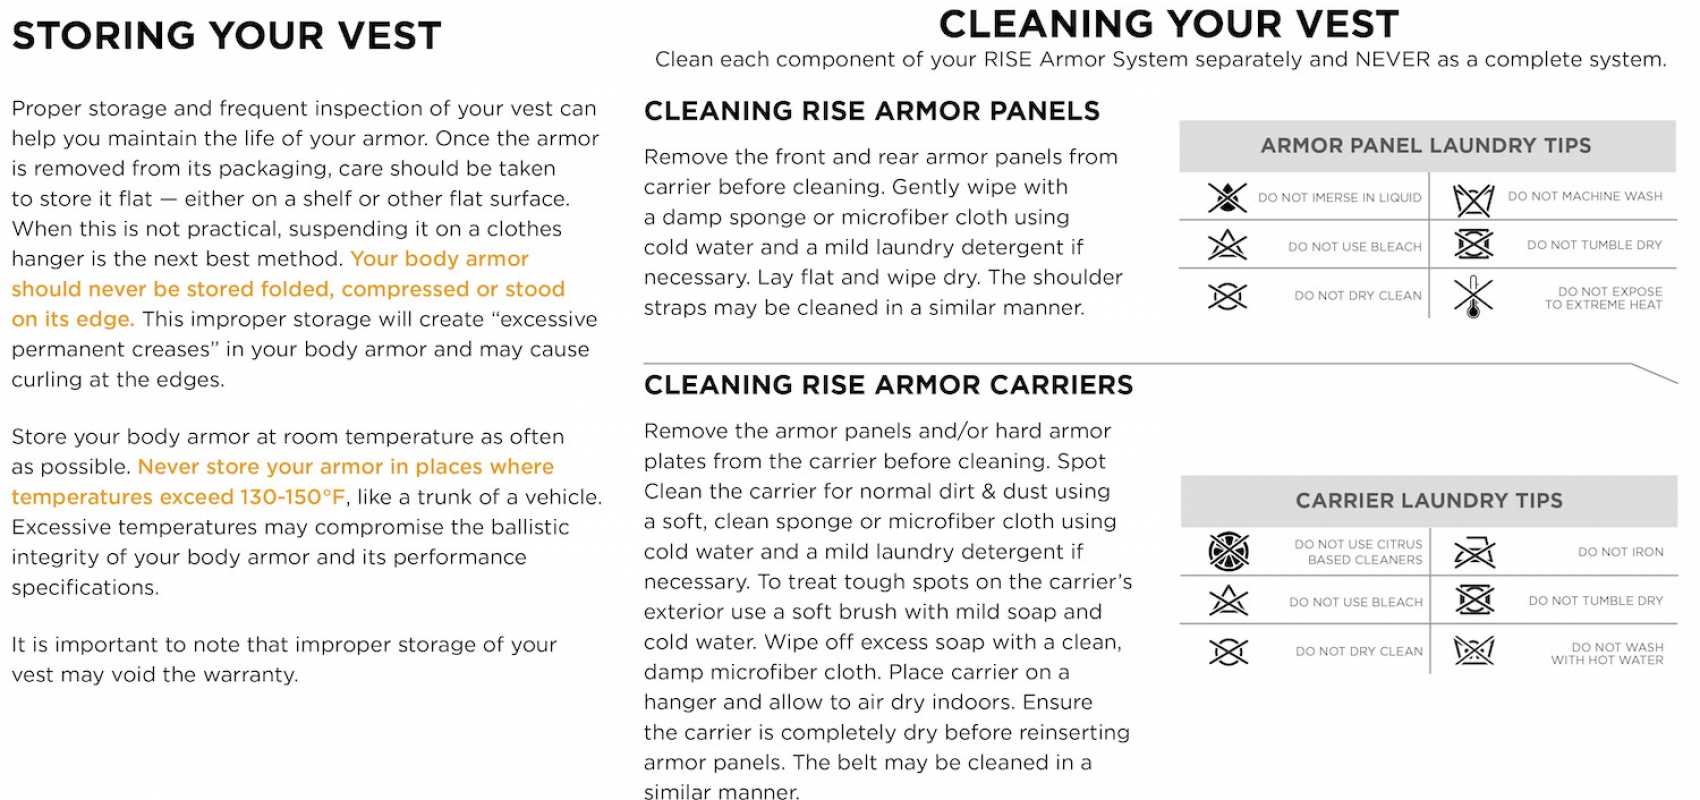 Use and Care Guides